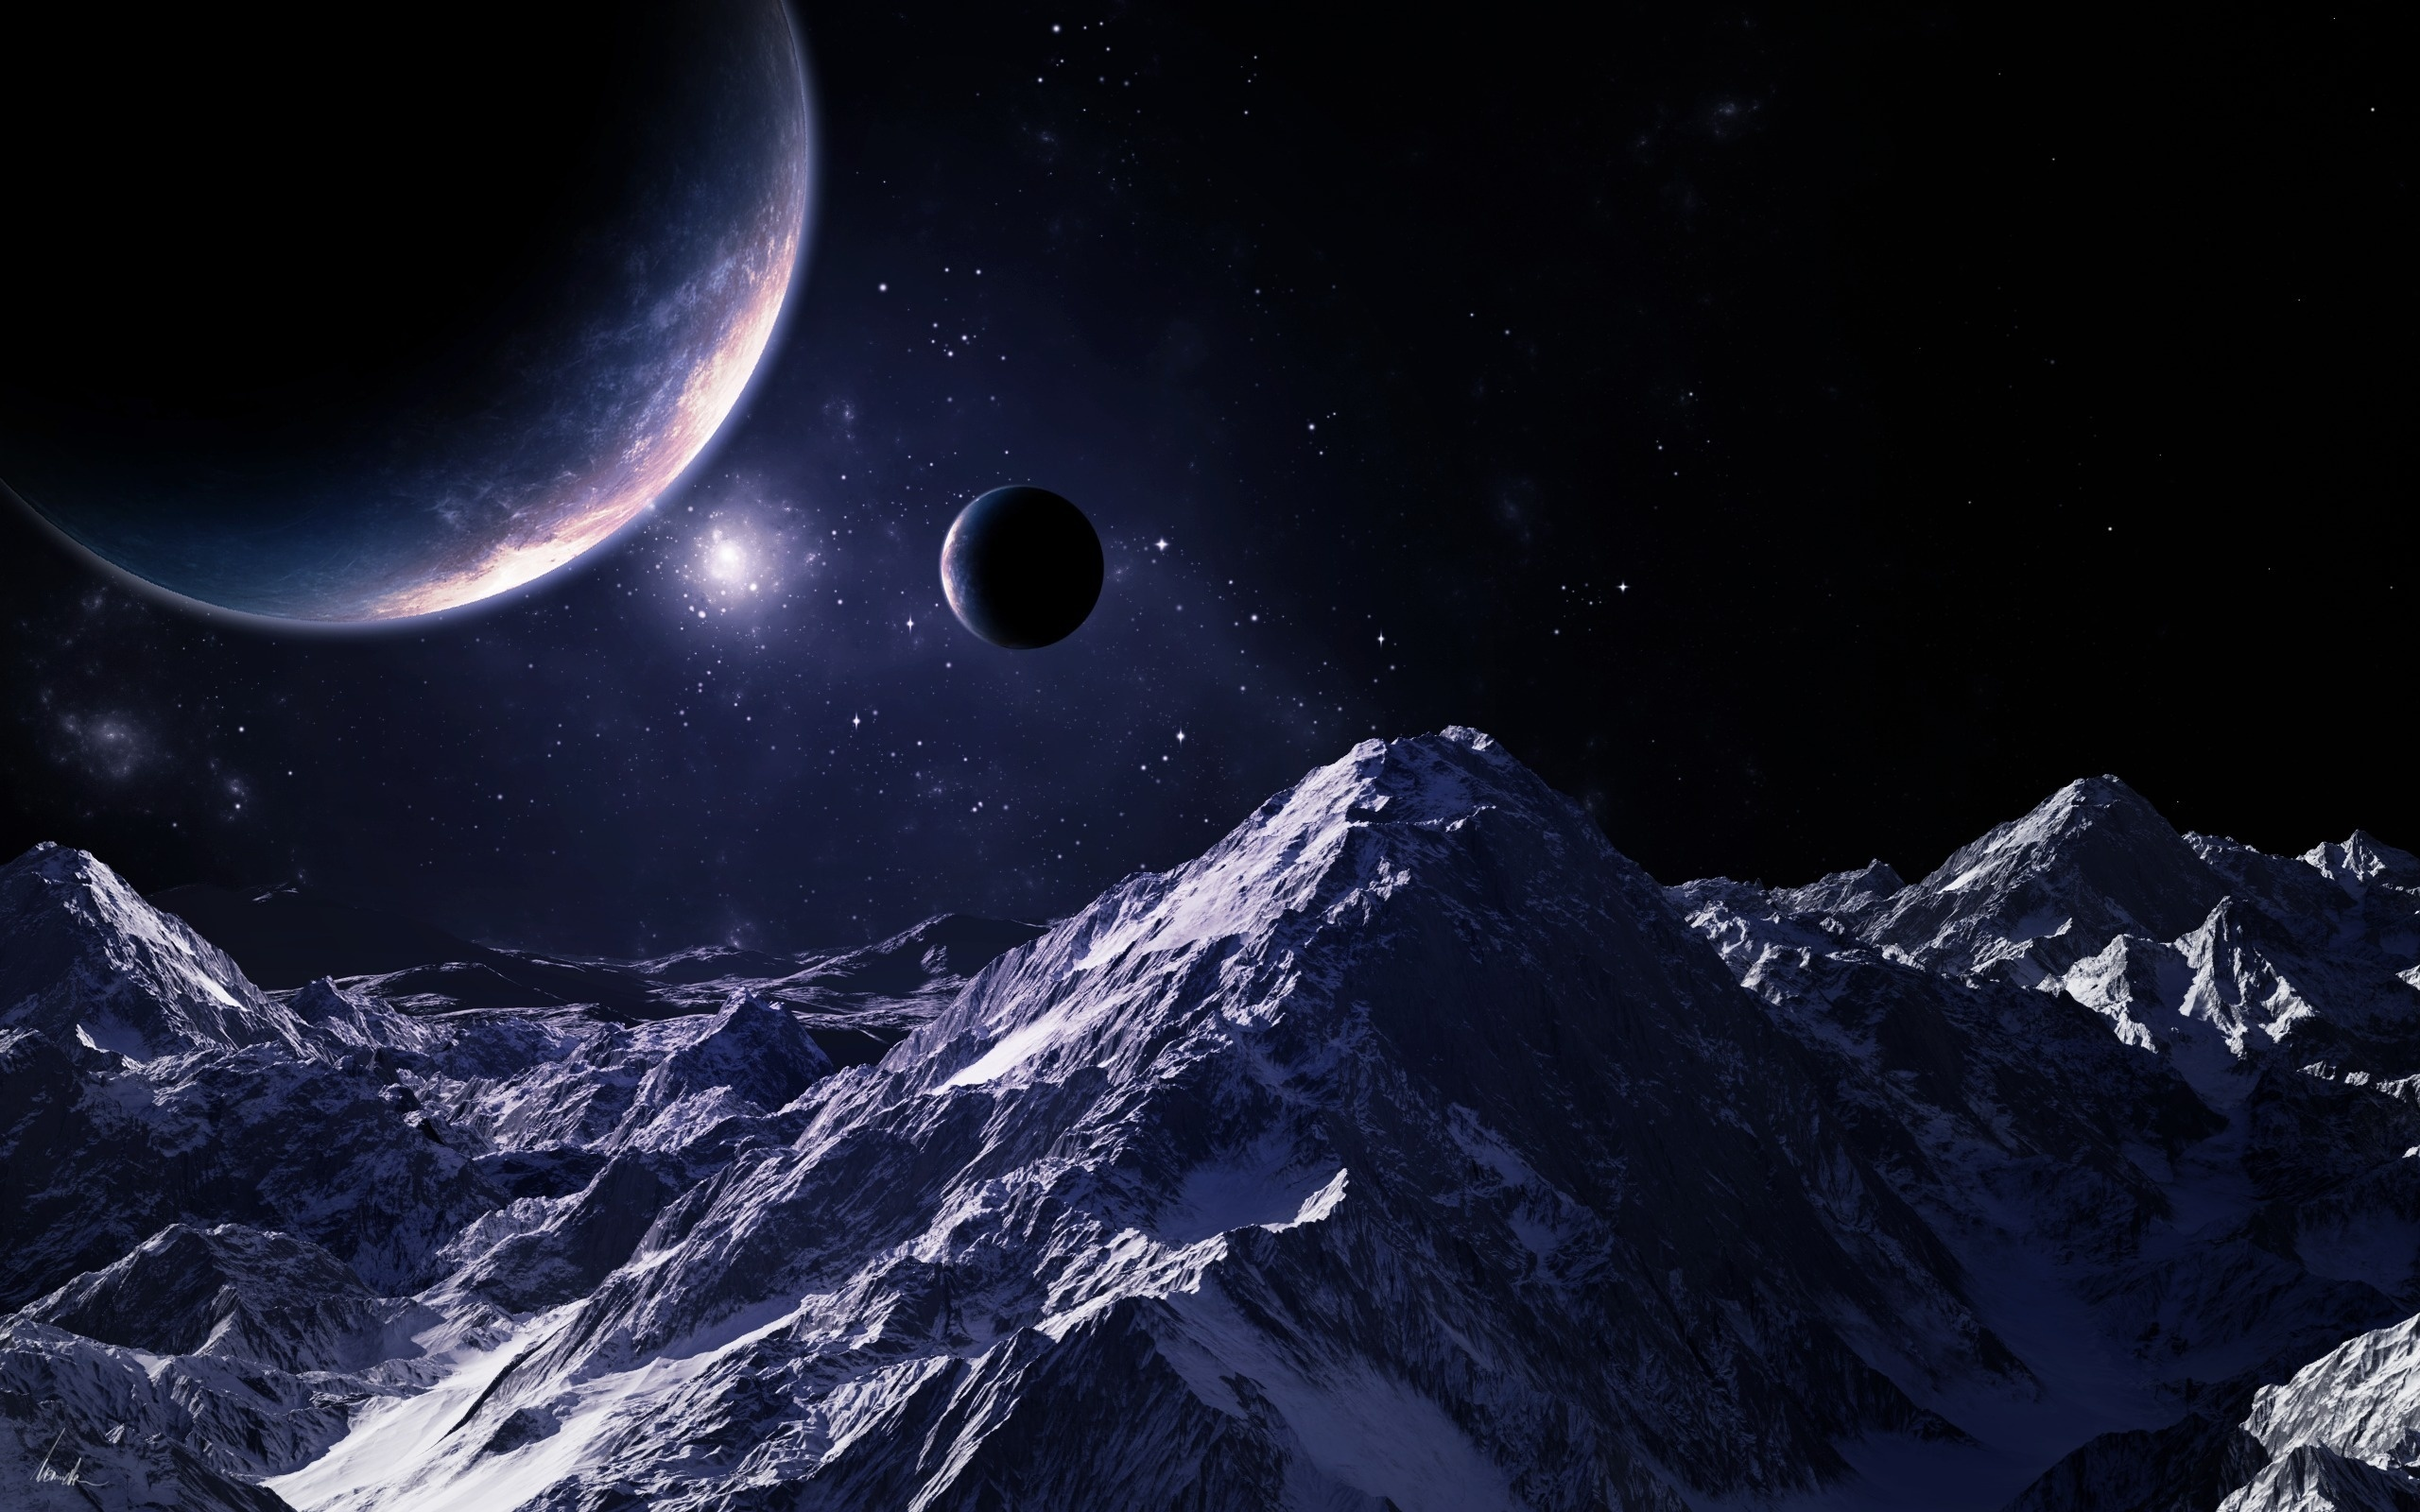 Good Wallpaper Mountain Space - wallls  Snapshot_46845.jpg